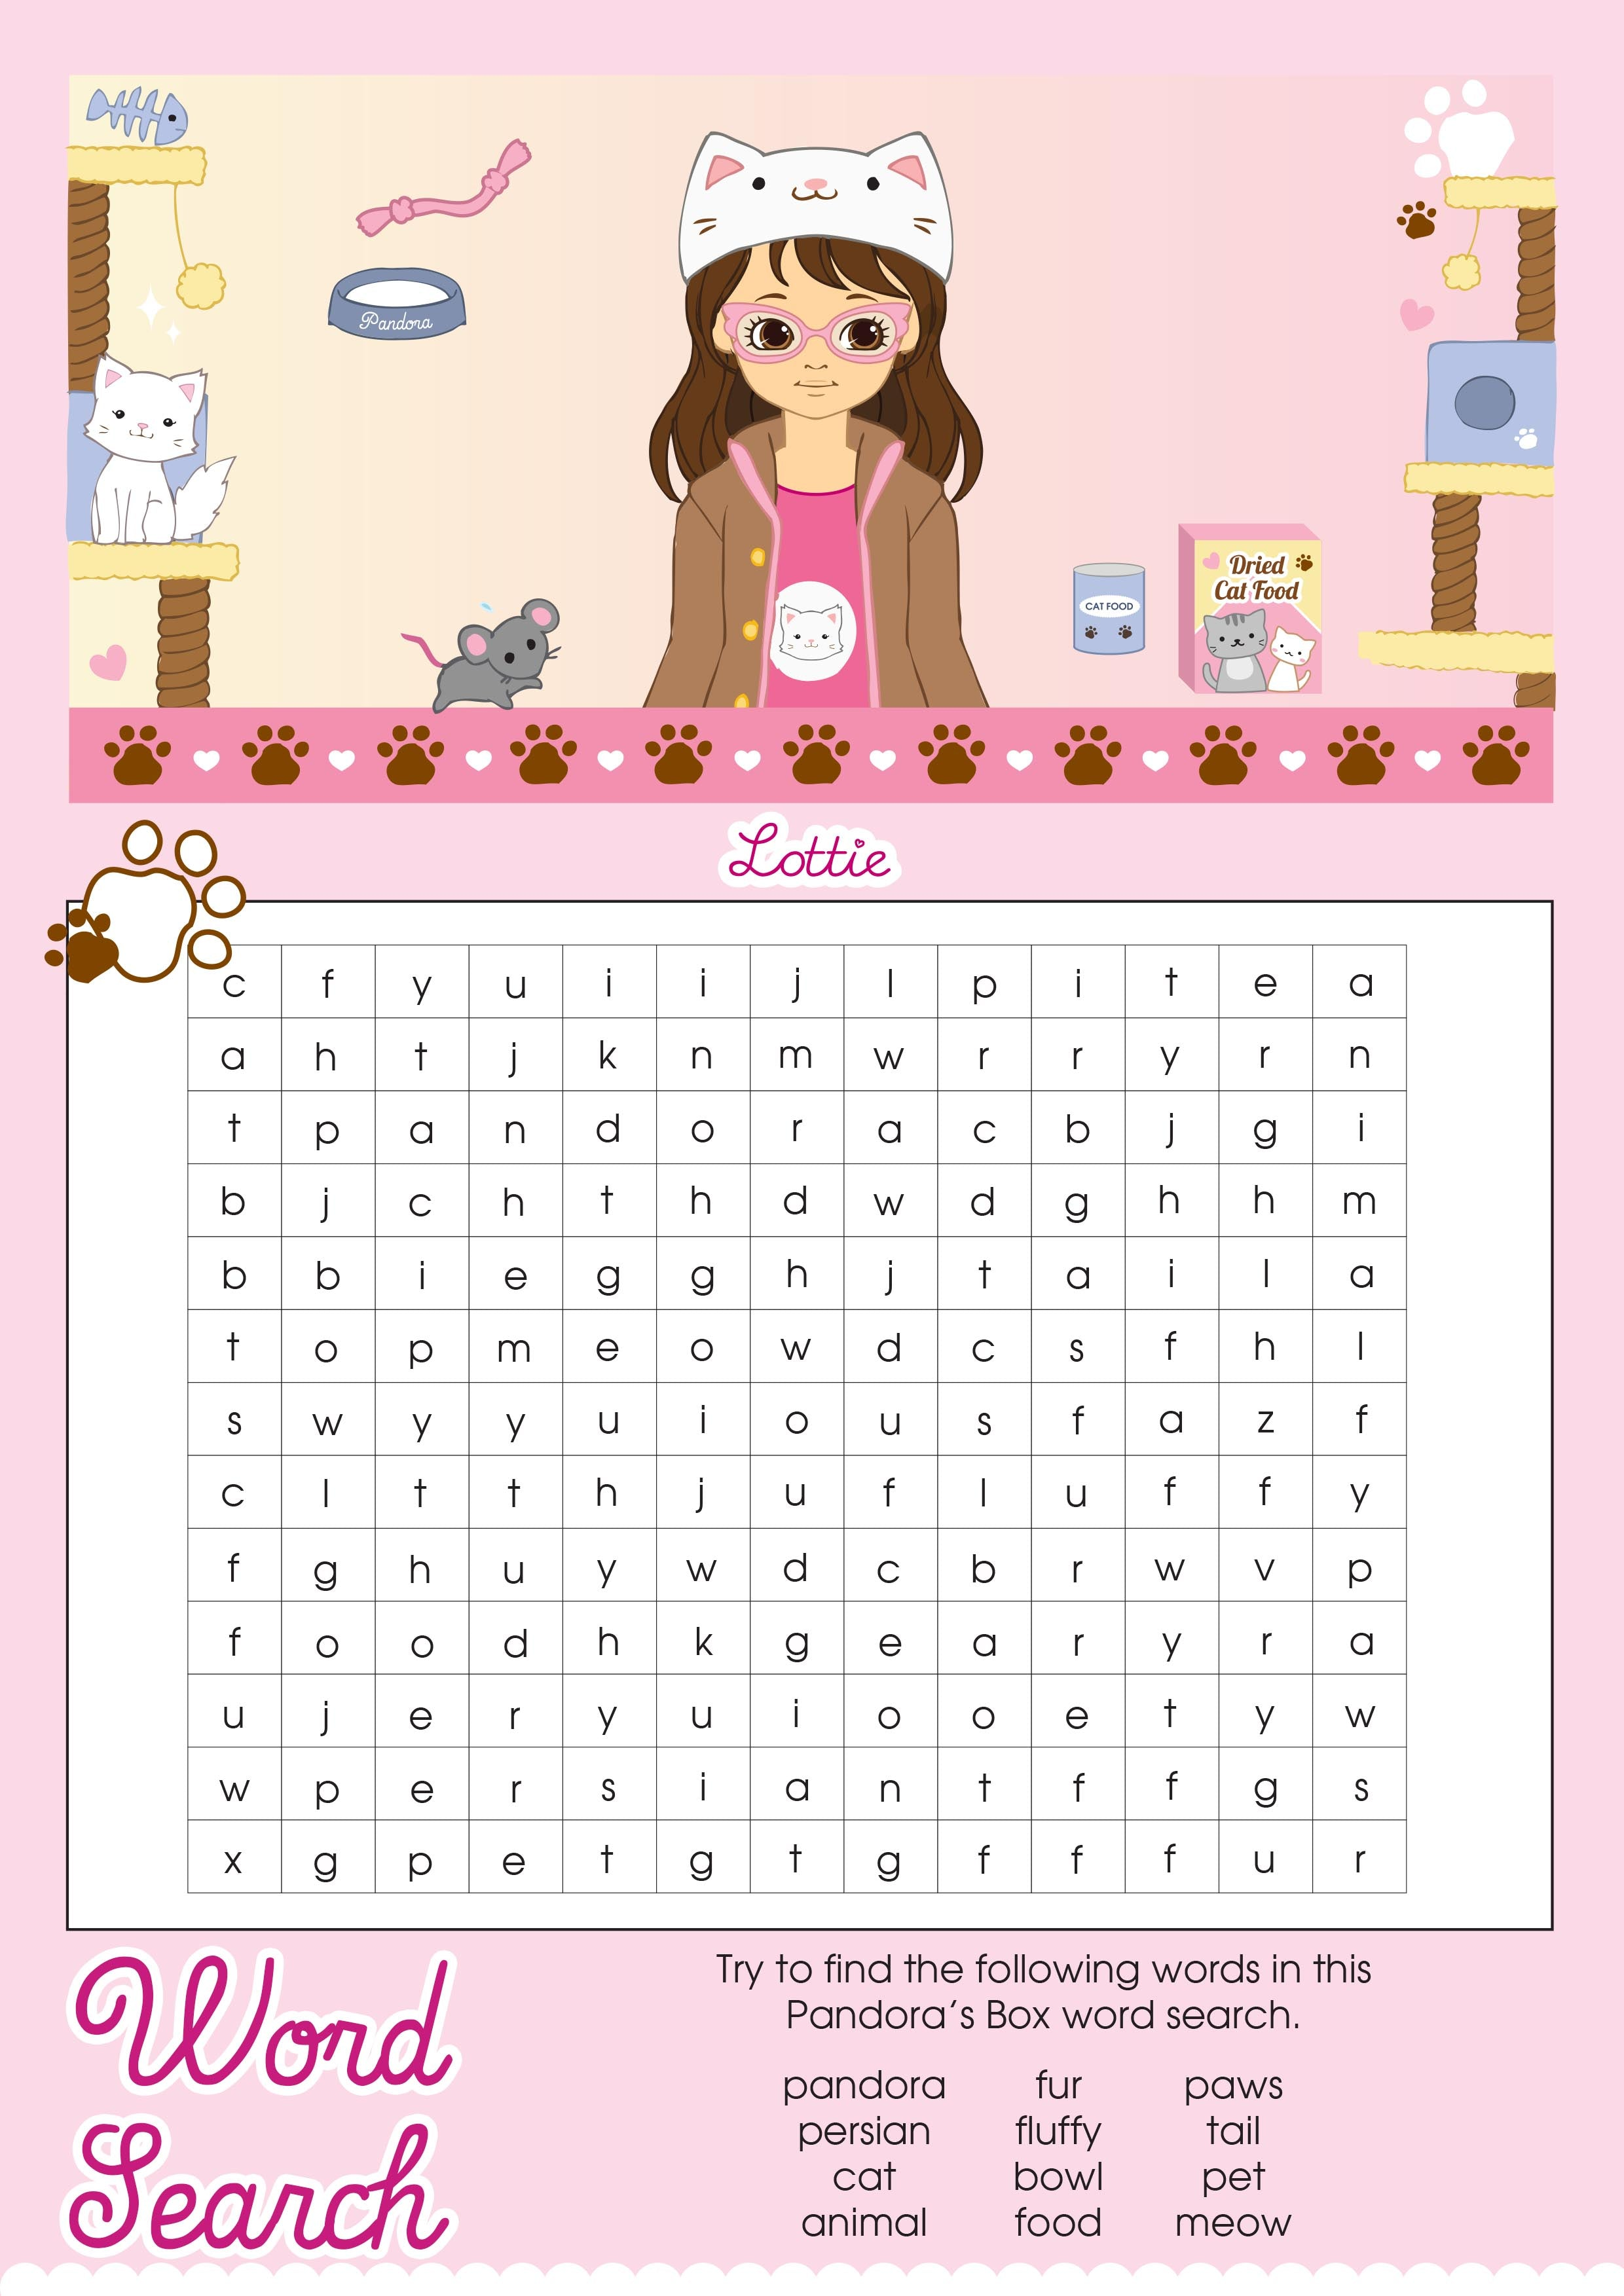 ... doll-printable-word-search-activity-for-kids.jpg?16465685481255890538